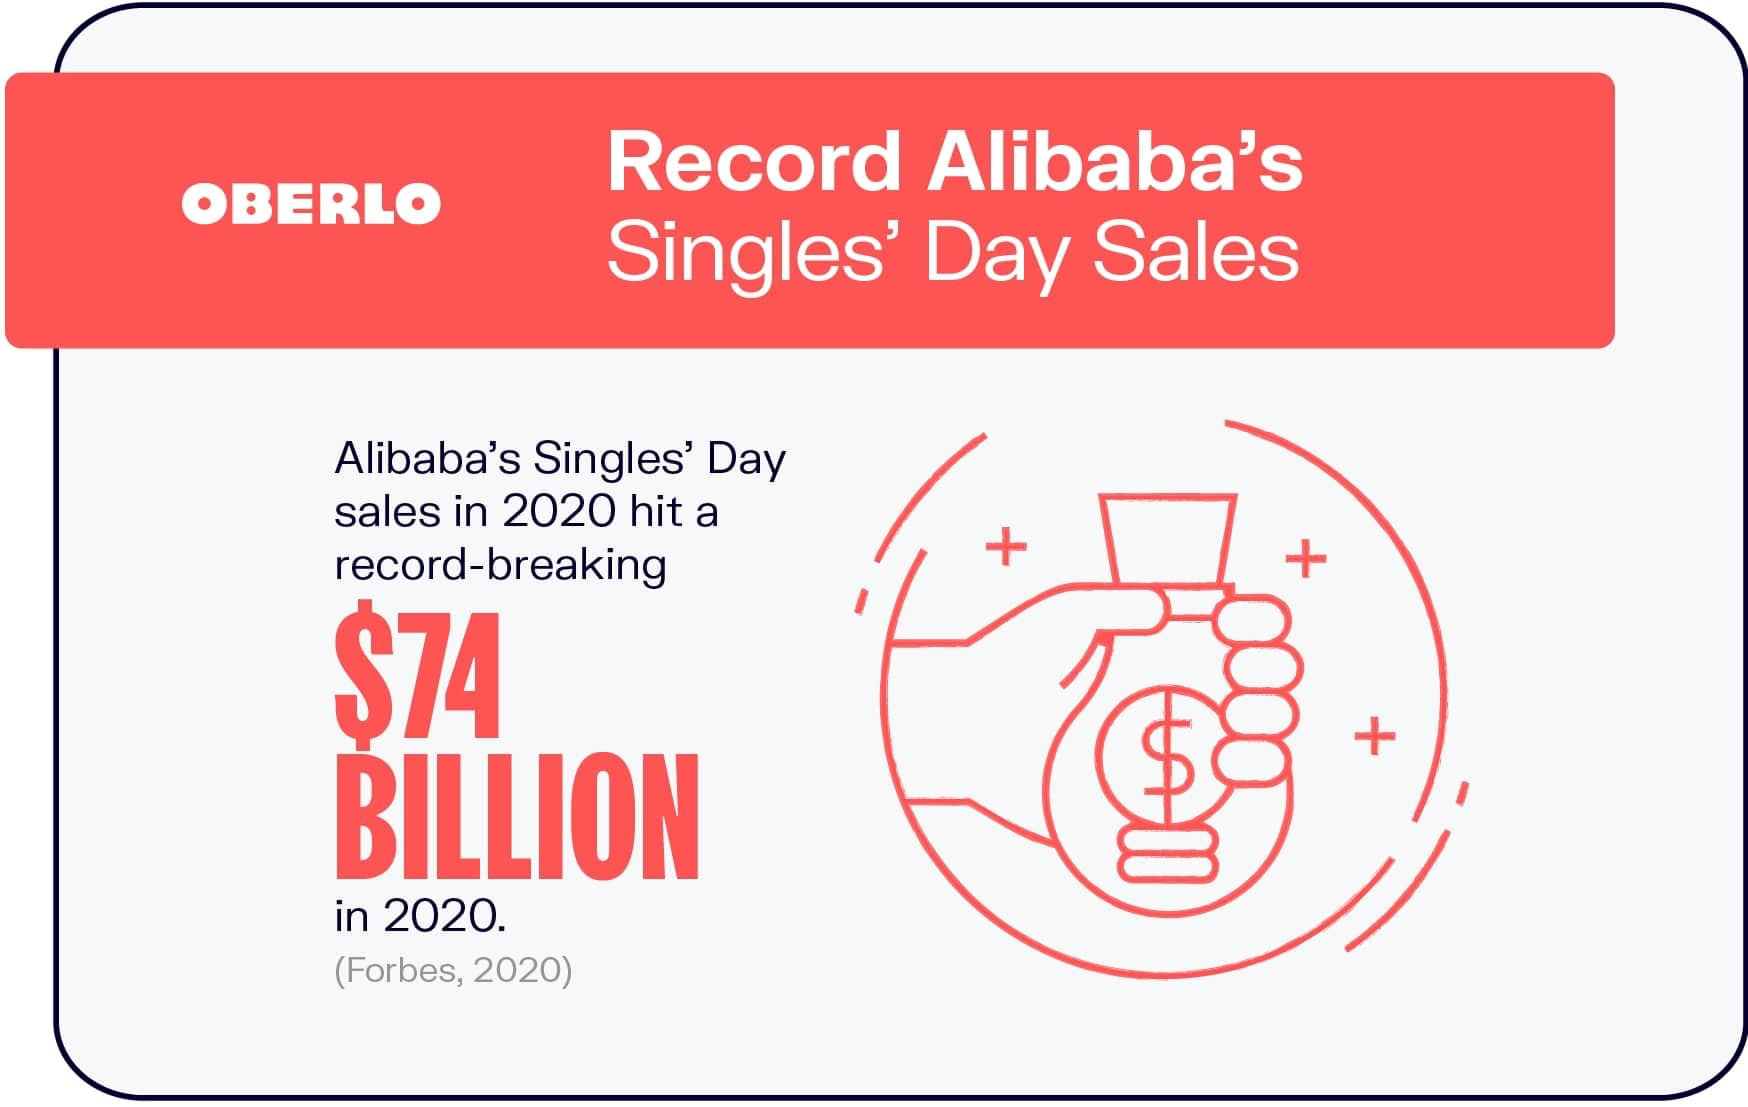 Record Alibaba's Singles' Day Sales